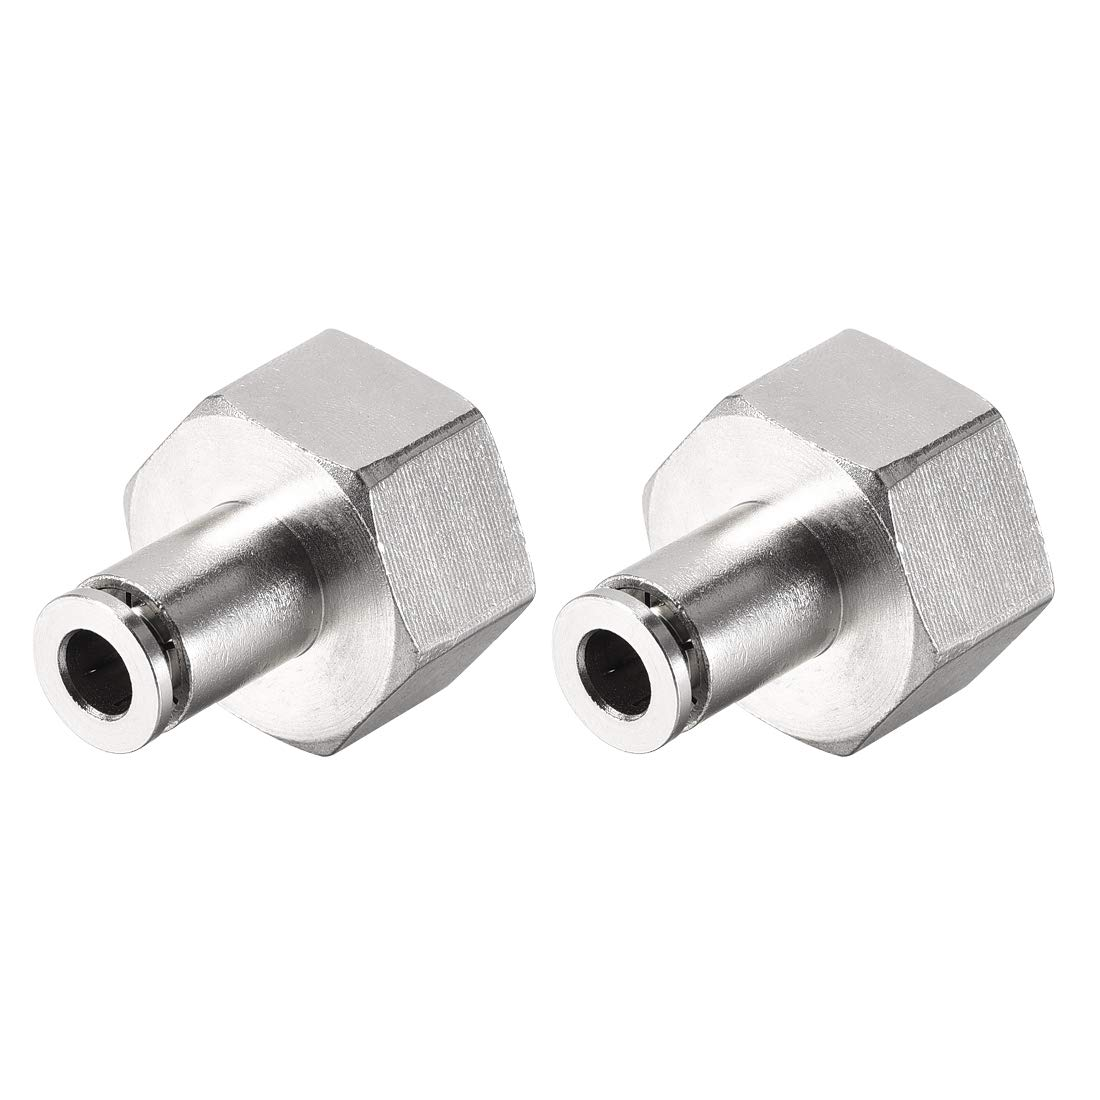 uxcell Push to Connect Tube Fittings 6mm Tube OD x 1//2 PT Female Straight Pneumatic Connecter Pipe Fitting Silver Tone 2Pcs